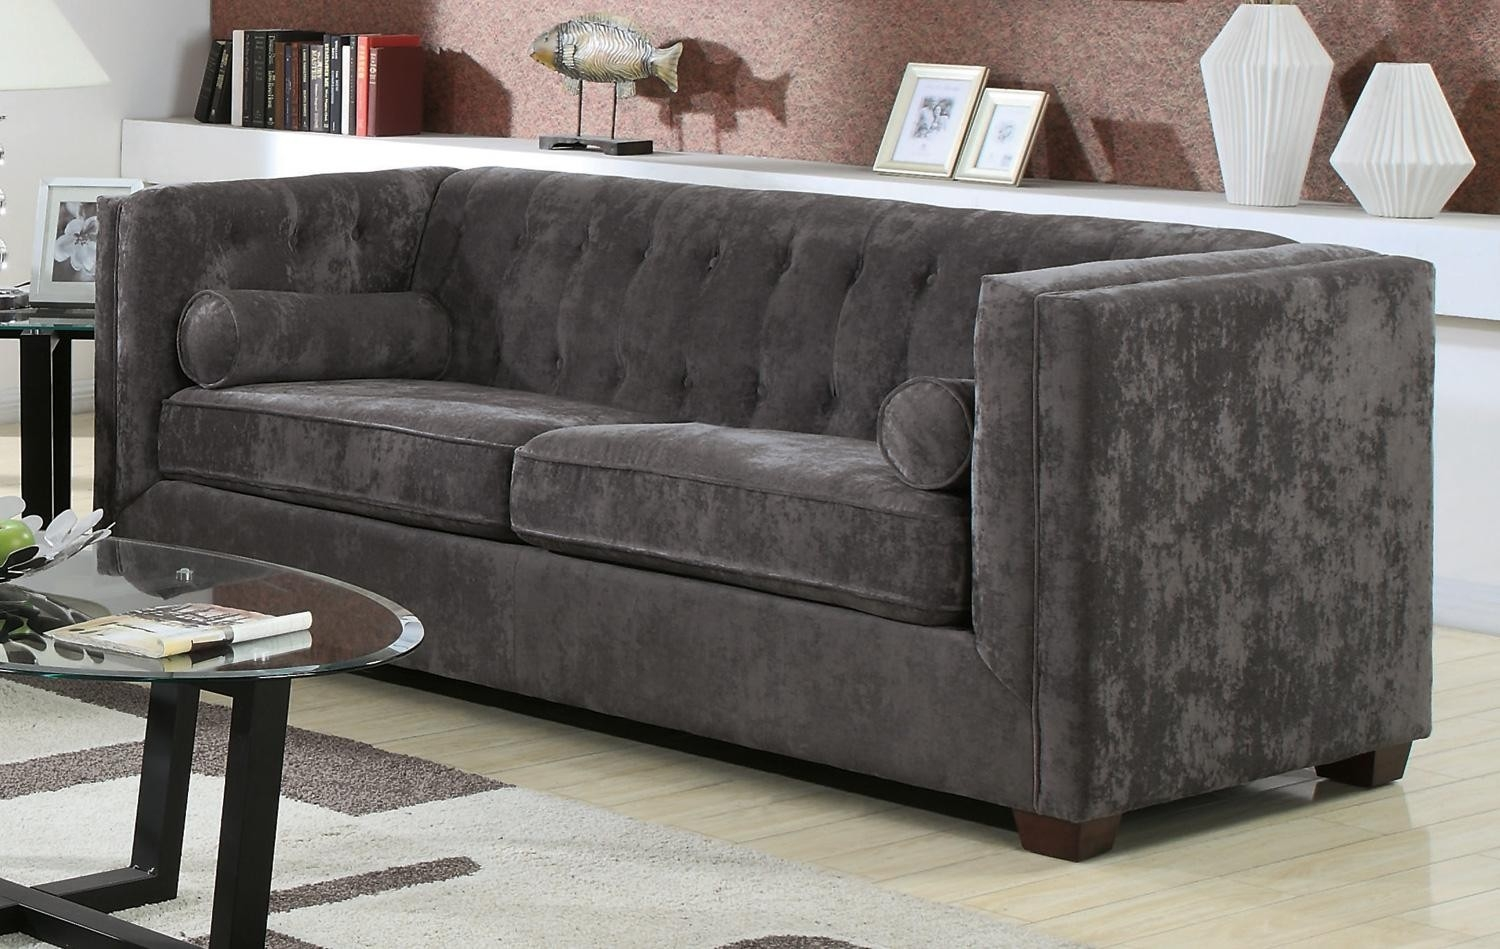 Sofas Center Alenya Sofa Set Charcoal Grey In Las Vegascharcoal Intended For Charcoal Grey Sofa (Image 9 of 15)